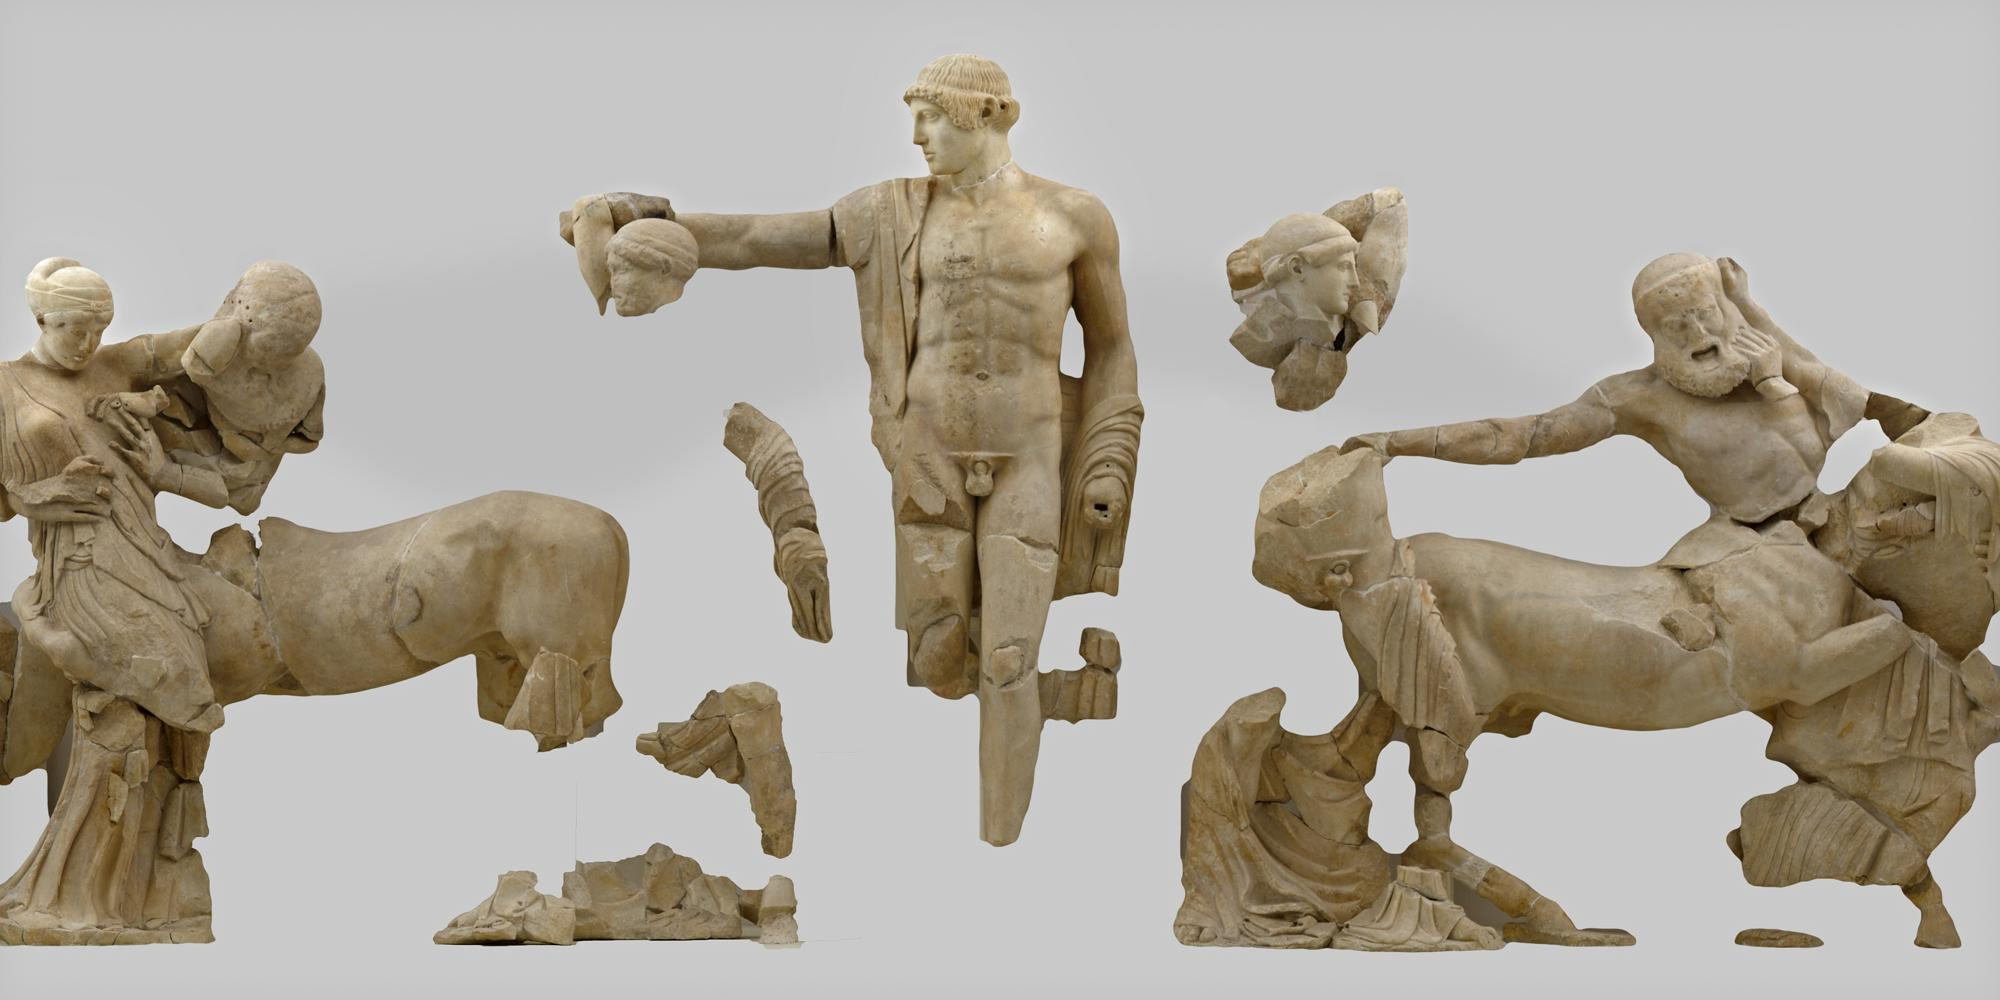 The western pediment of the Temple of Zeus represents the battle between Centaurs and Lapiths. – © Hellenic Ministry of Culture and Sports / Ephorate of Antiquities of Ilia (efailias)